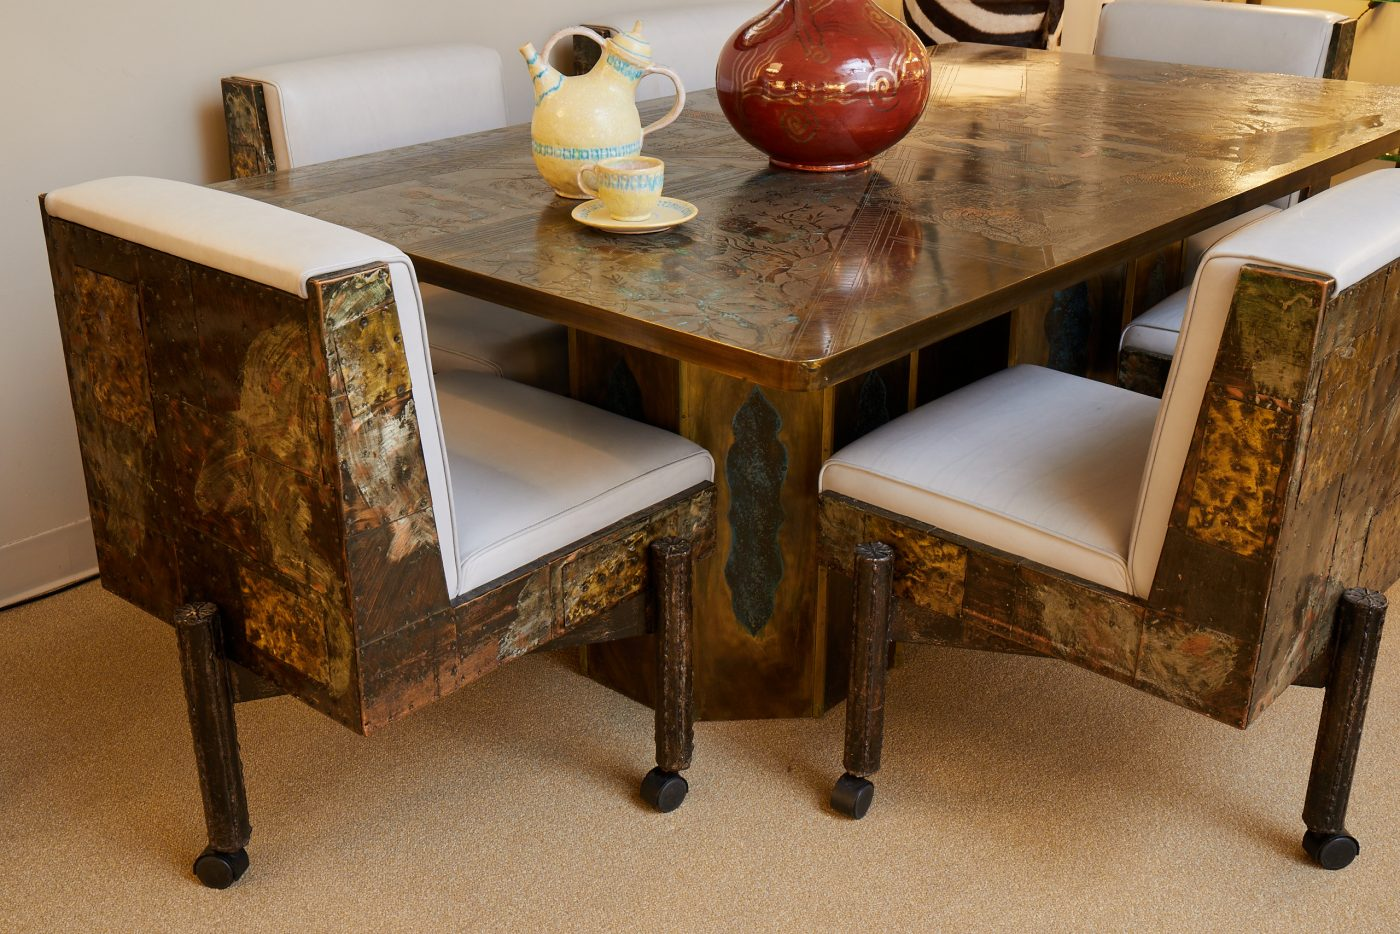 Pieces from a Guido Gambone ceramic on top of a Philip and Kelvin LaVerne dining table and Paul Evans dining chairs